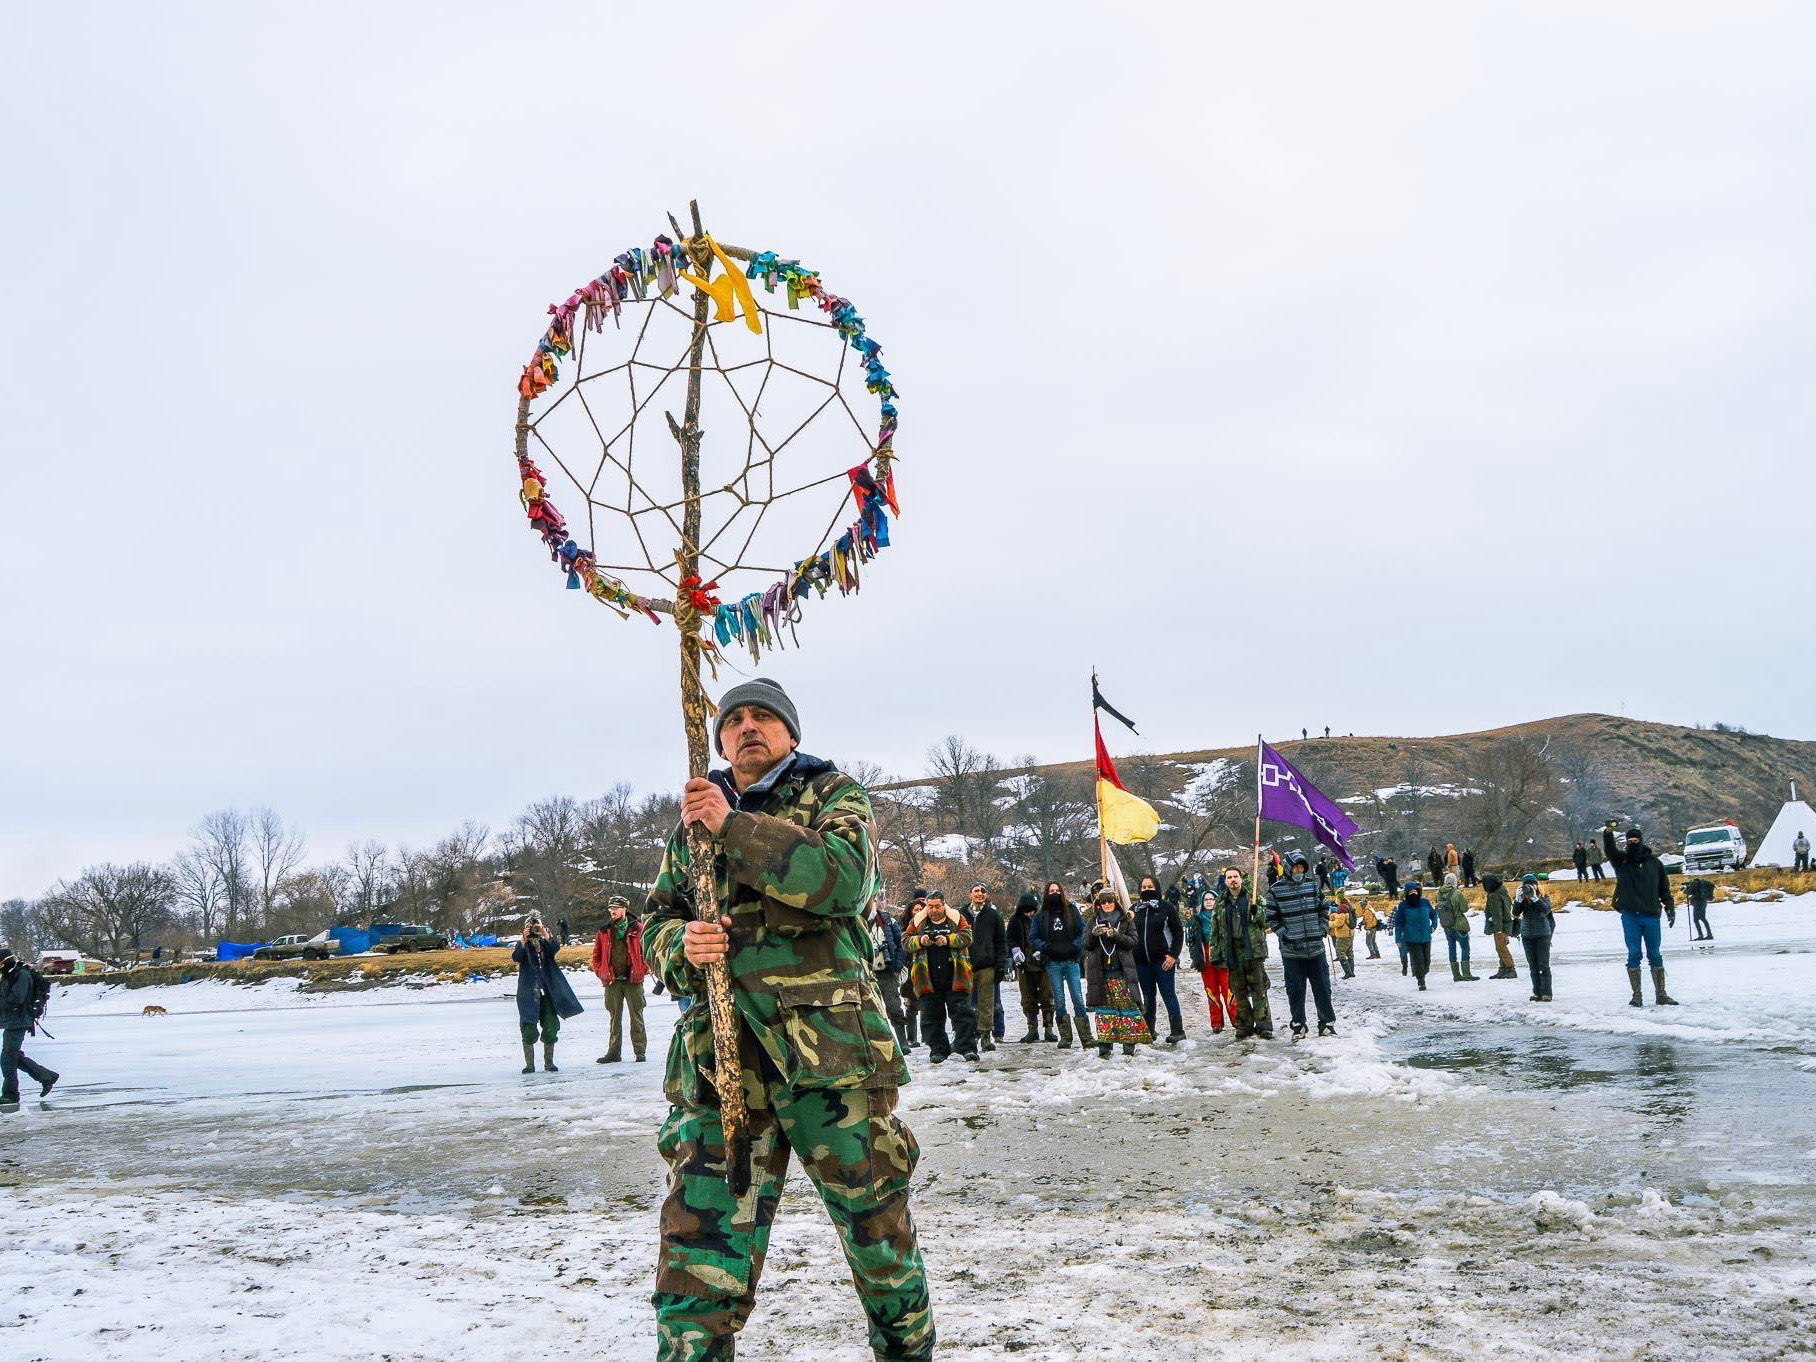 Peter d'Errico: Yankton Sioux Tribe battles Dakota Access in court